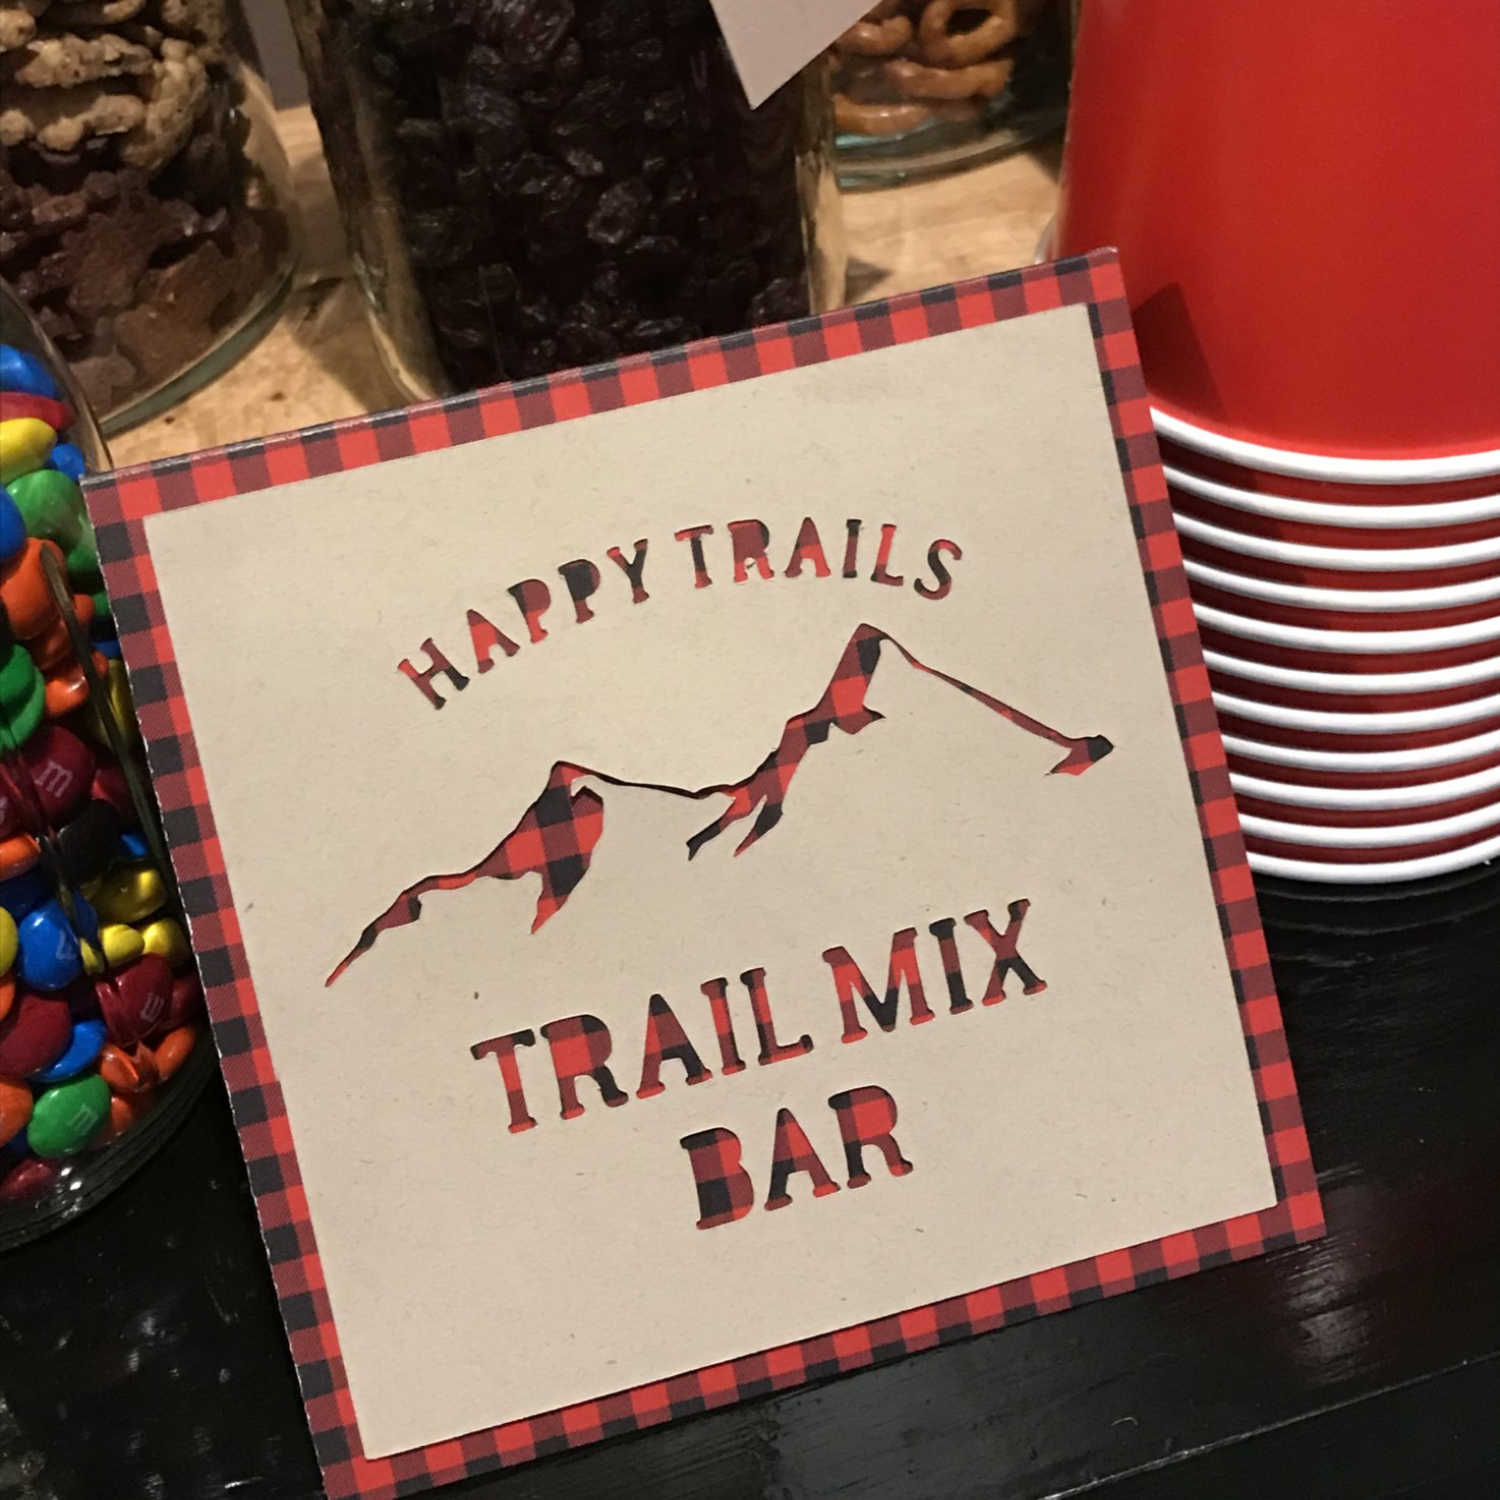 Happy Trails to You Trail Mix Bar Sign | Posted Fete